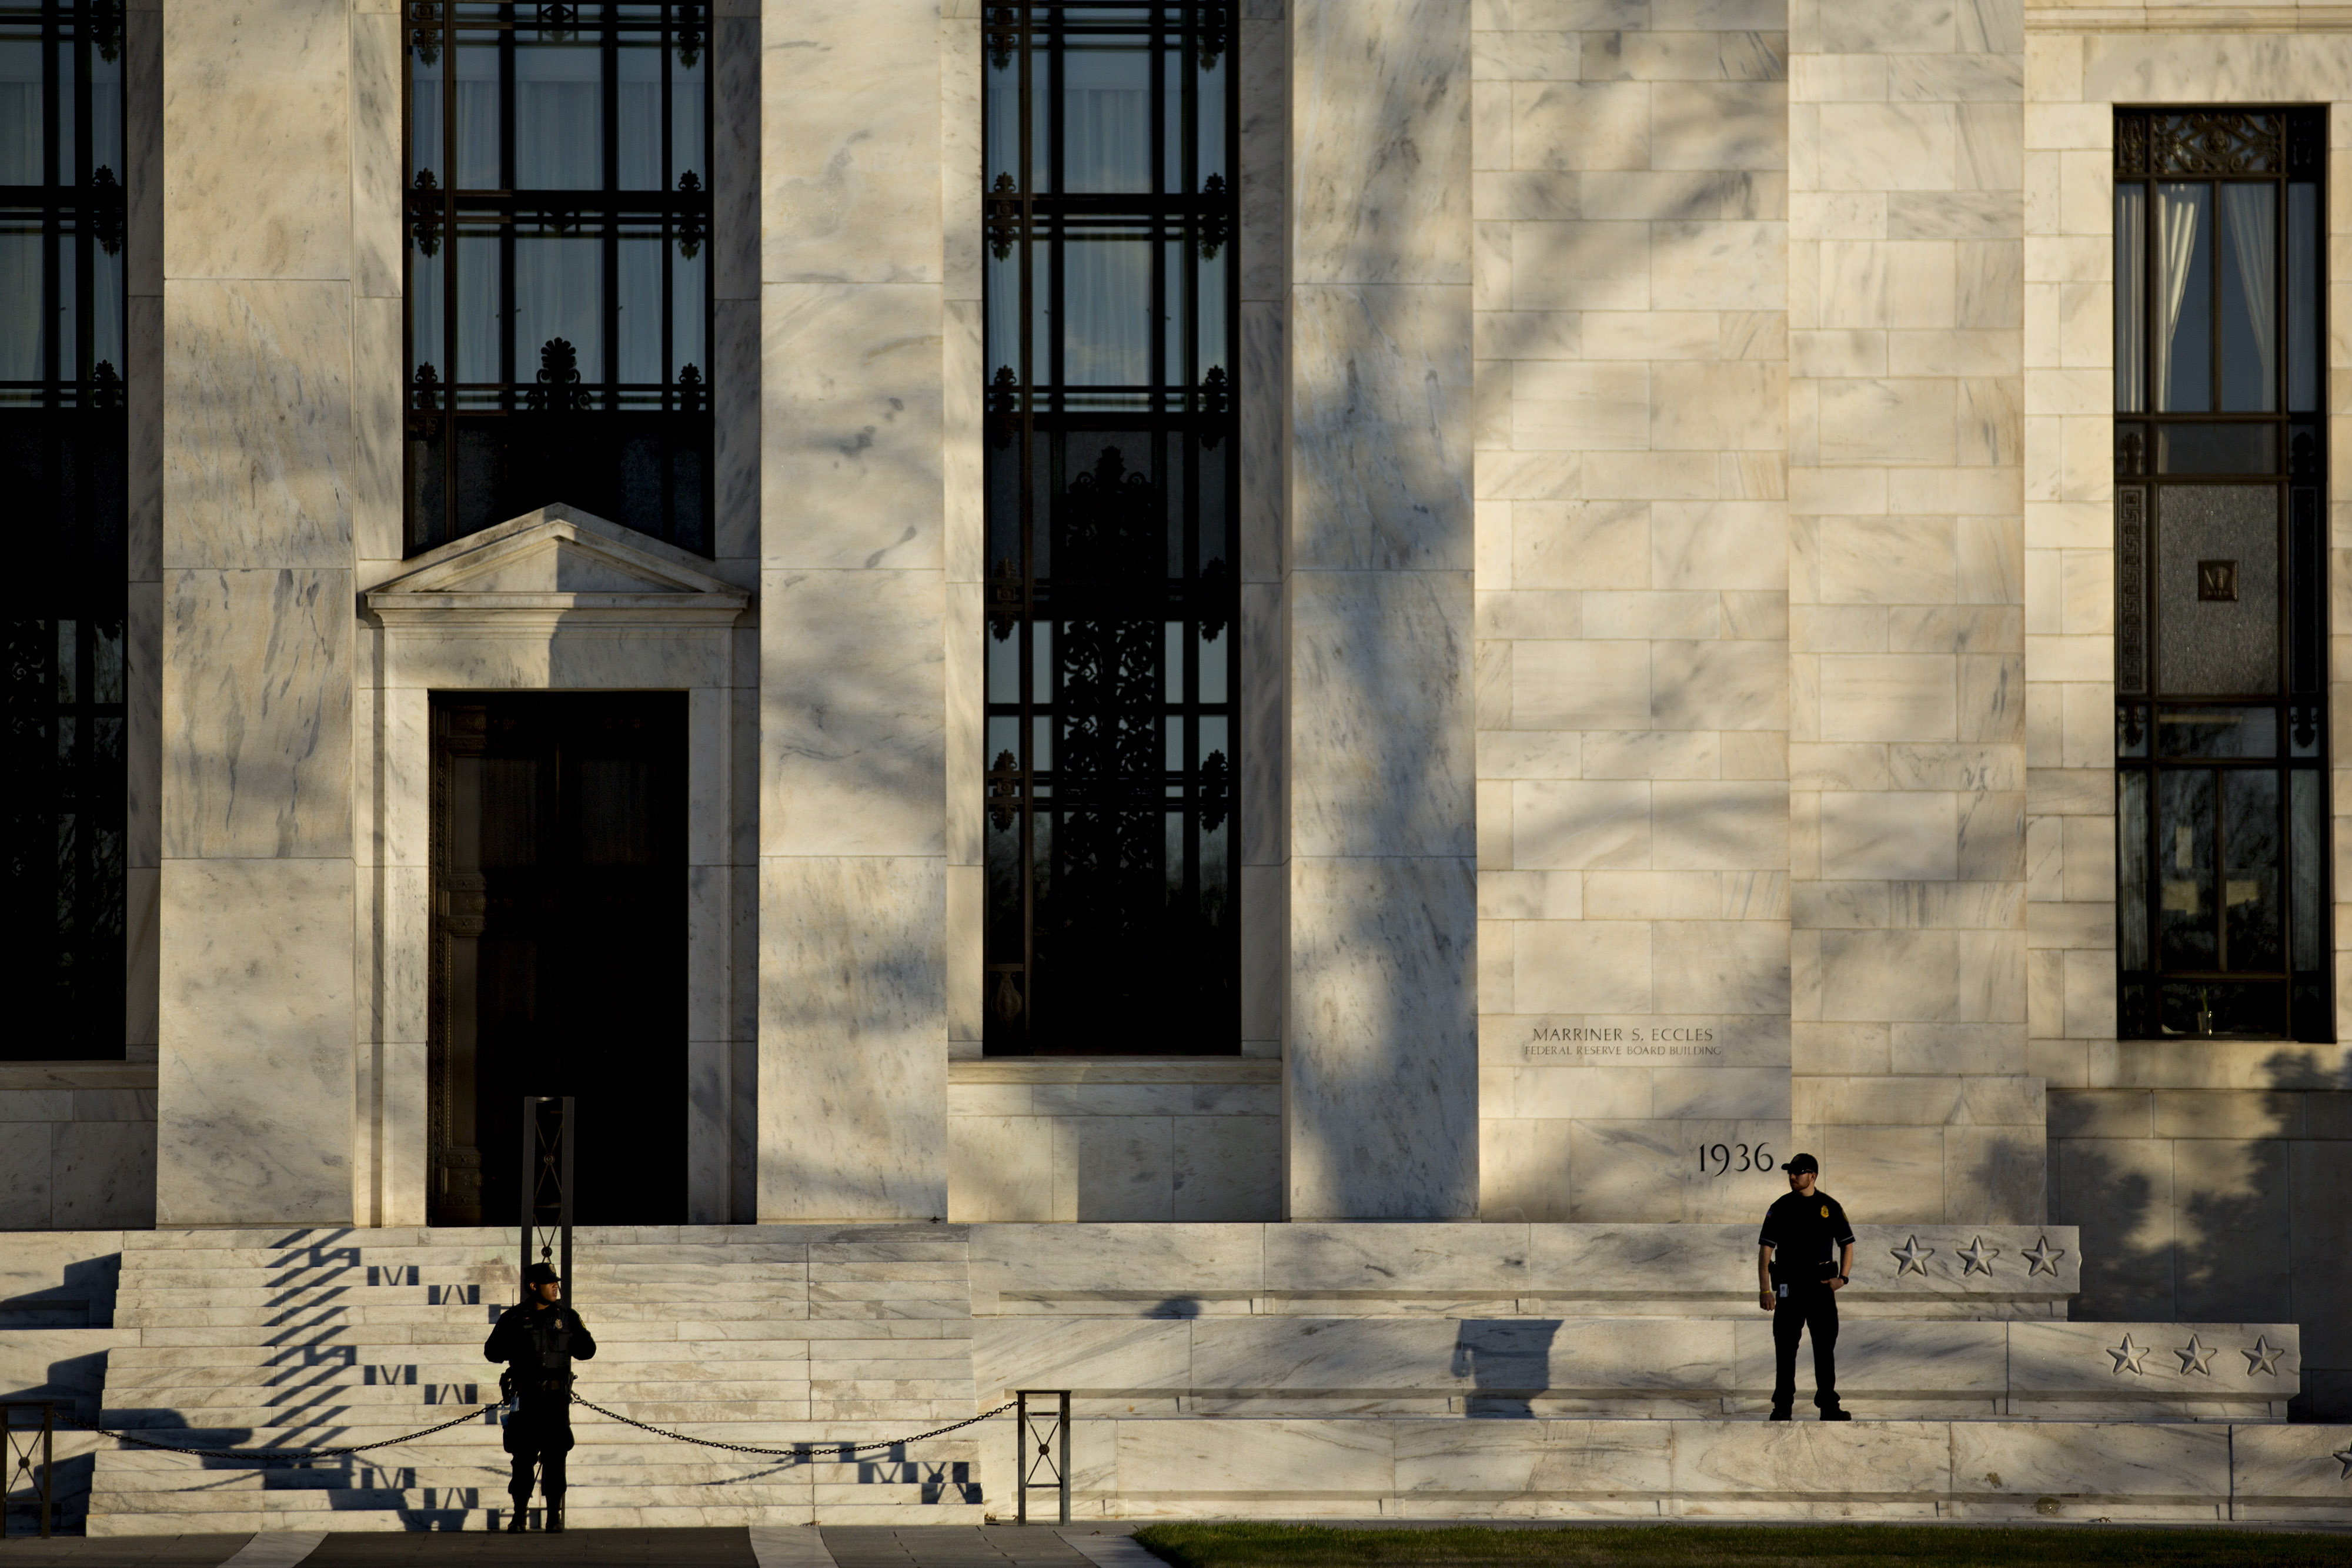 Federal Reserve police officers stand in front of the Marriner S. Eccles Federal Reserve building in Washington, D.C., on Dec. 15, 2015.